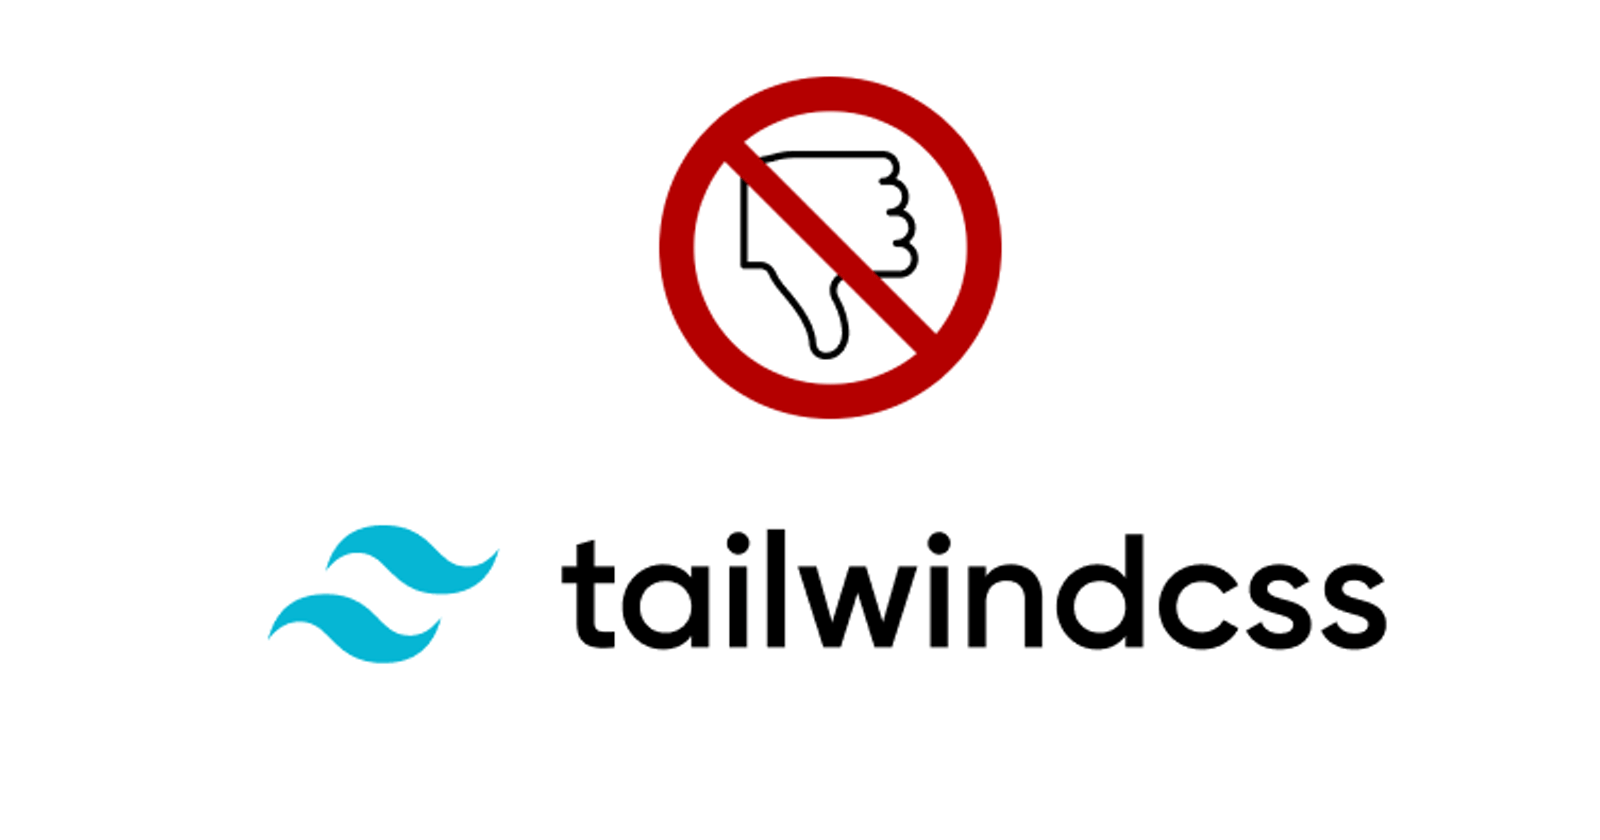 Debunking Tailwind Counterarguments